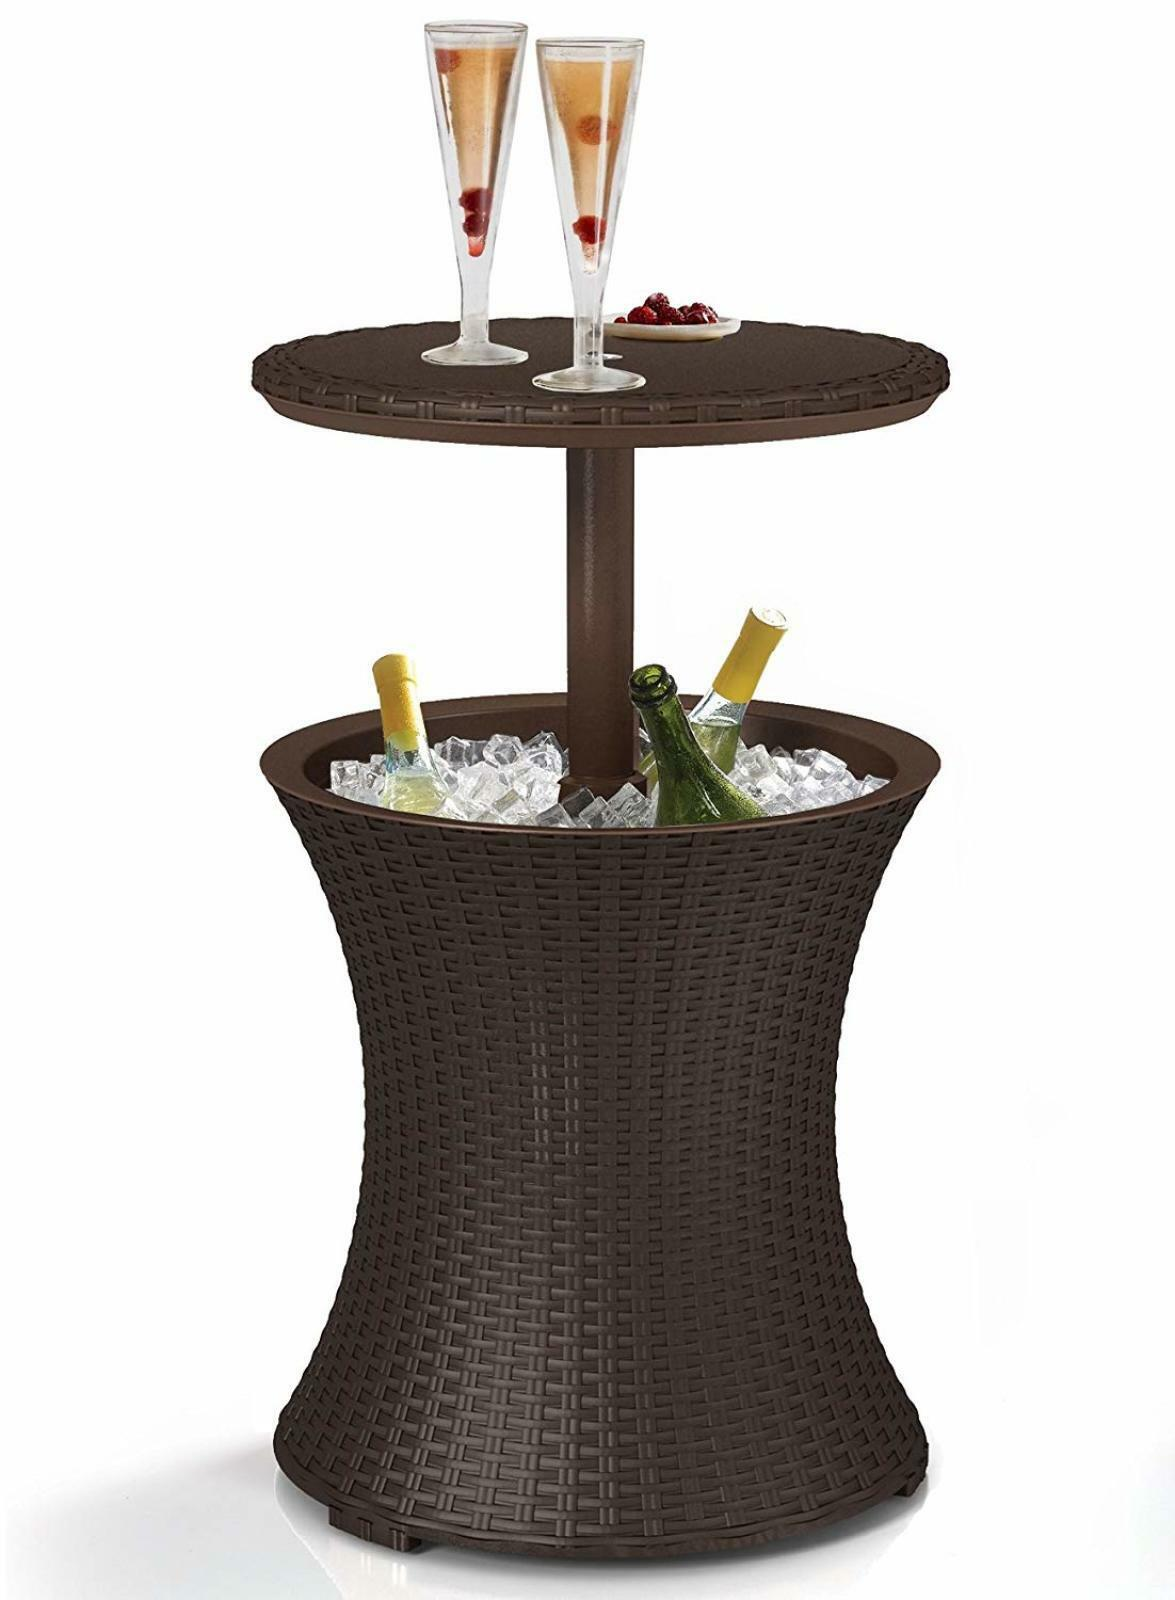 details about ice chest outdoor patio pool cooler table w cover rattan 7 5 gal brown ice box